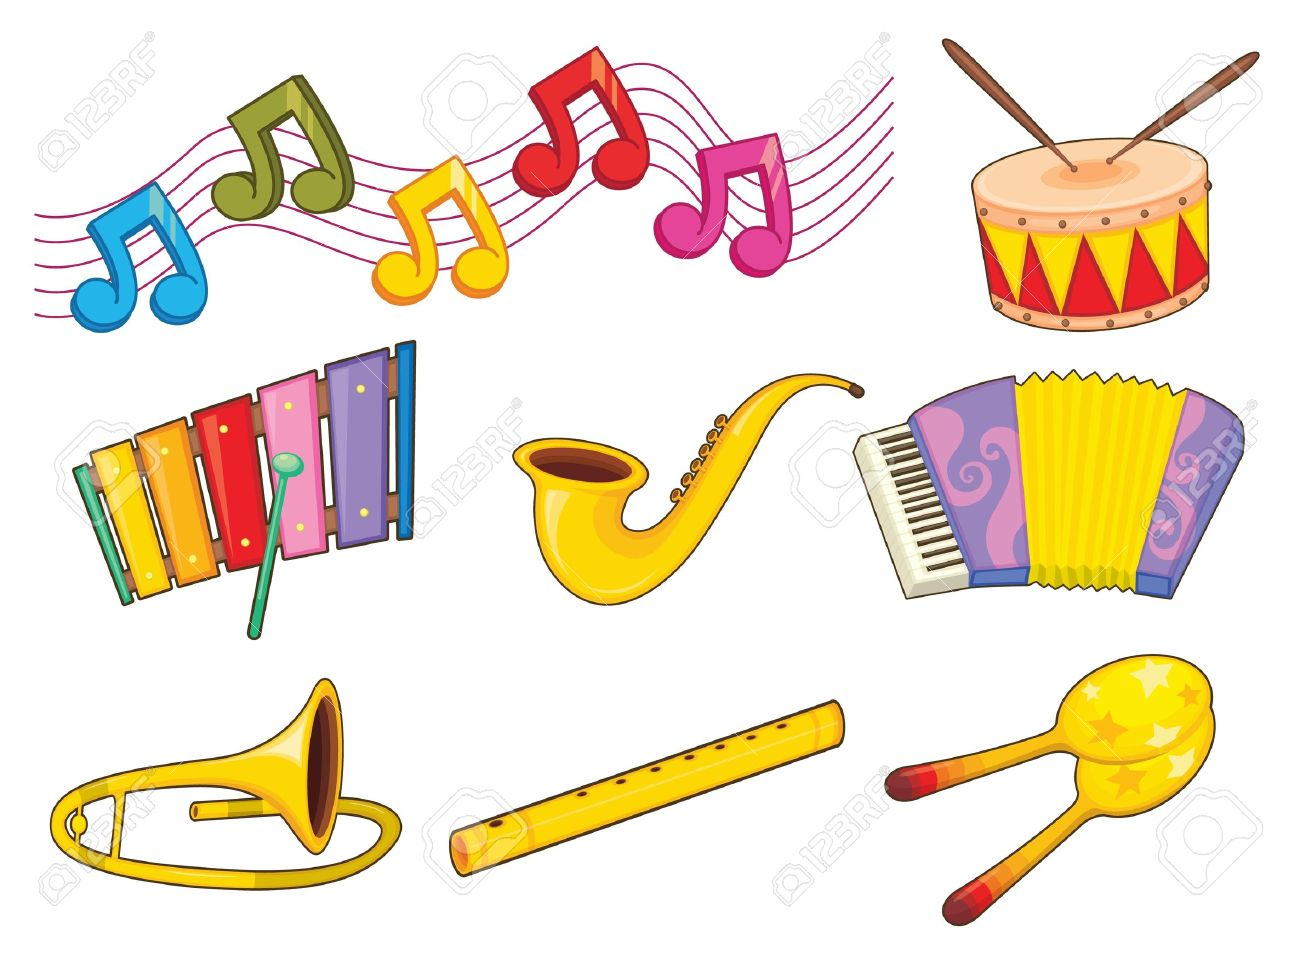 Illustration of mixed musical instruments Stock Vector - 13935076